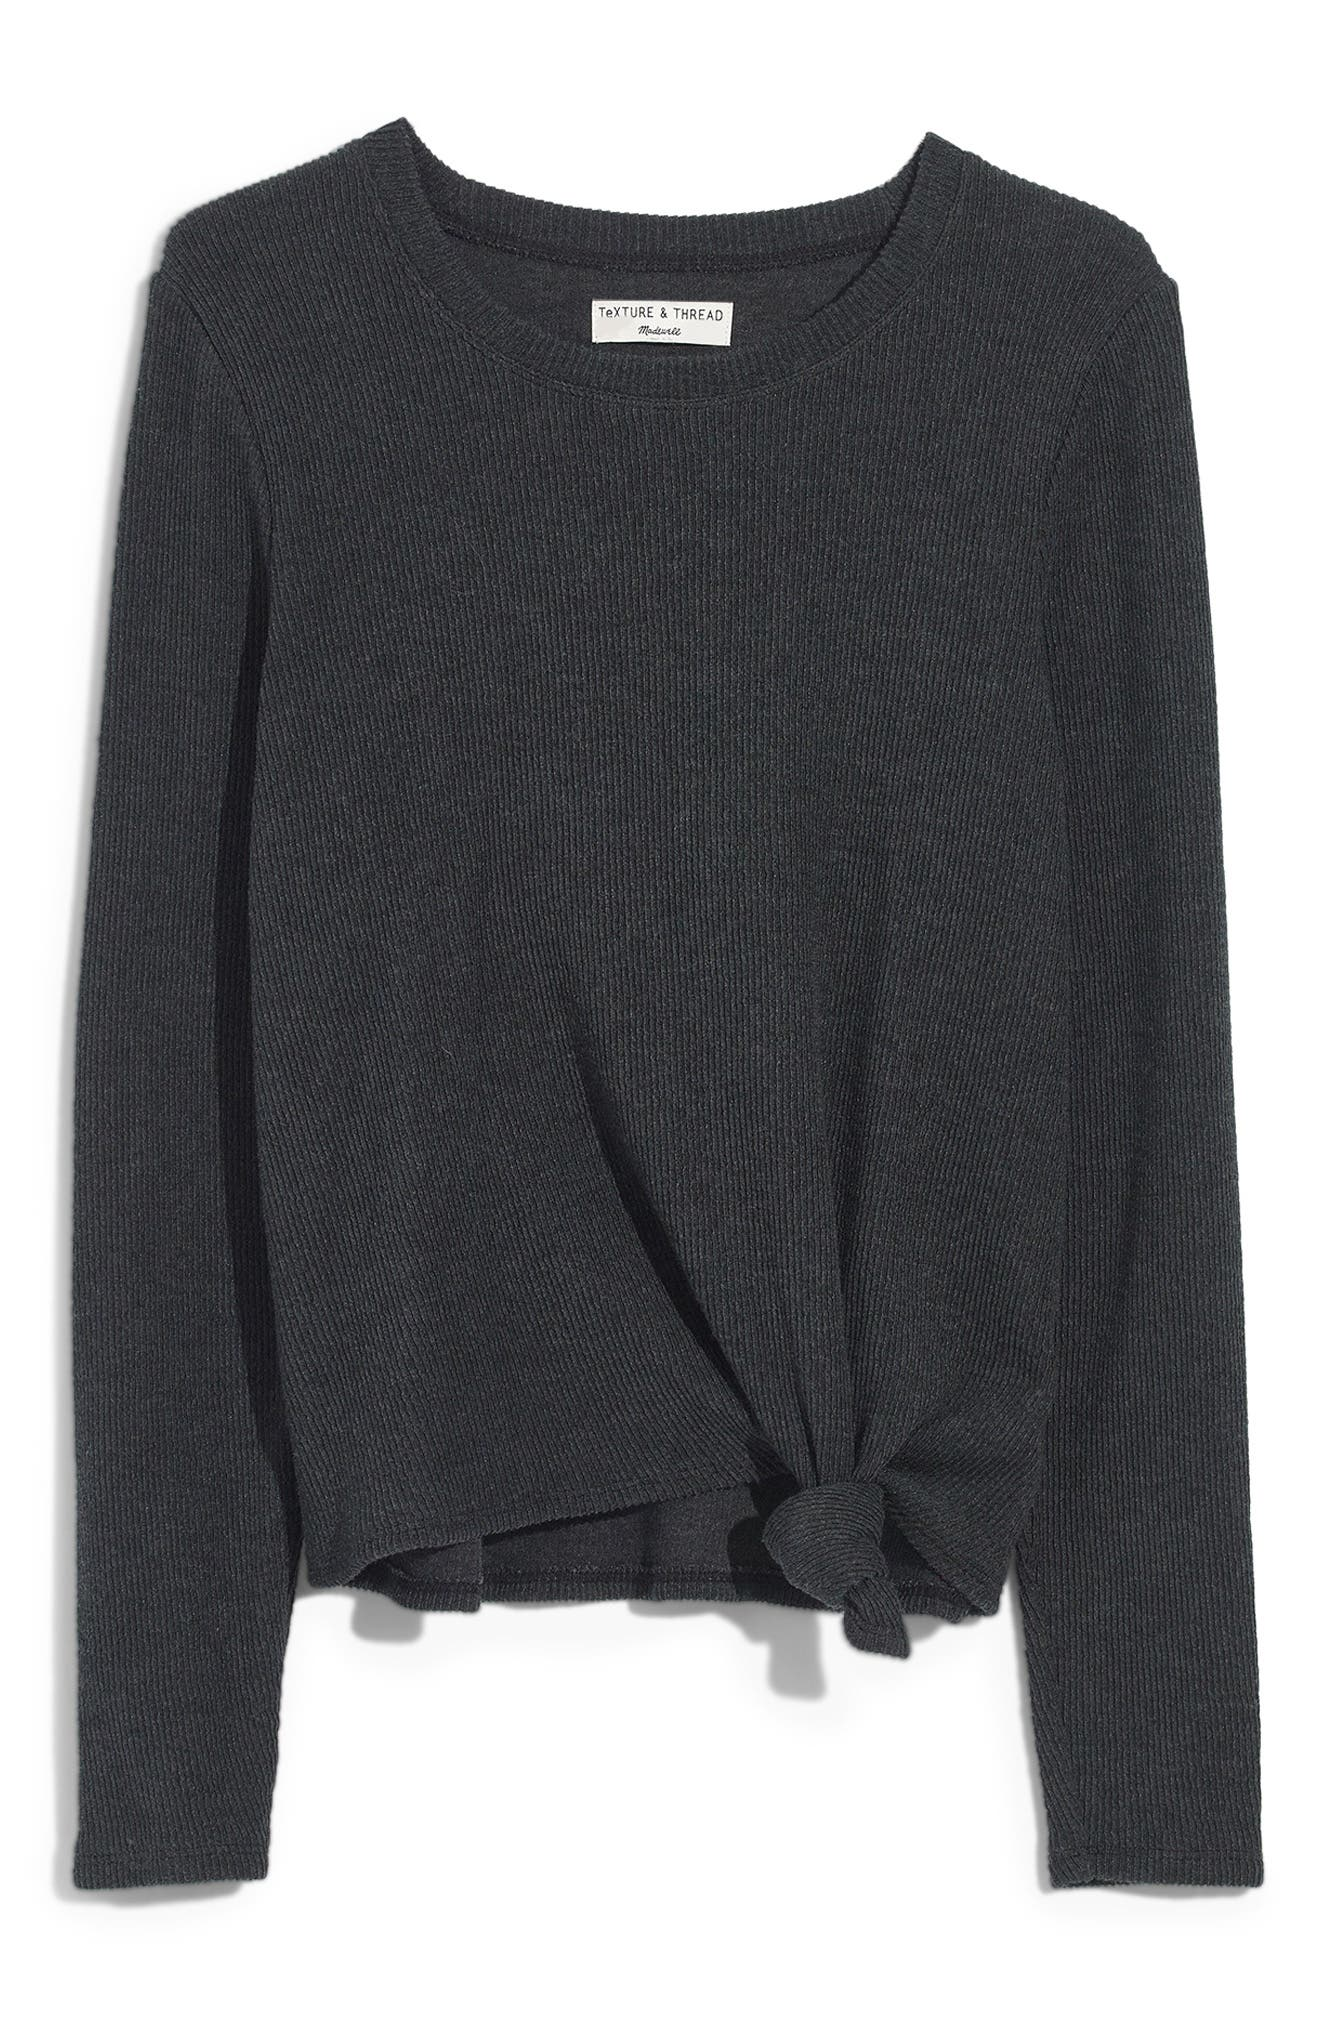 MADEWELL,                             Texture & Thread Front Knot Jacquard Top,                             Main thumbnail 1, color,                             HEATHER COAL